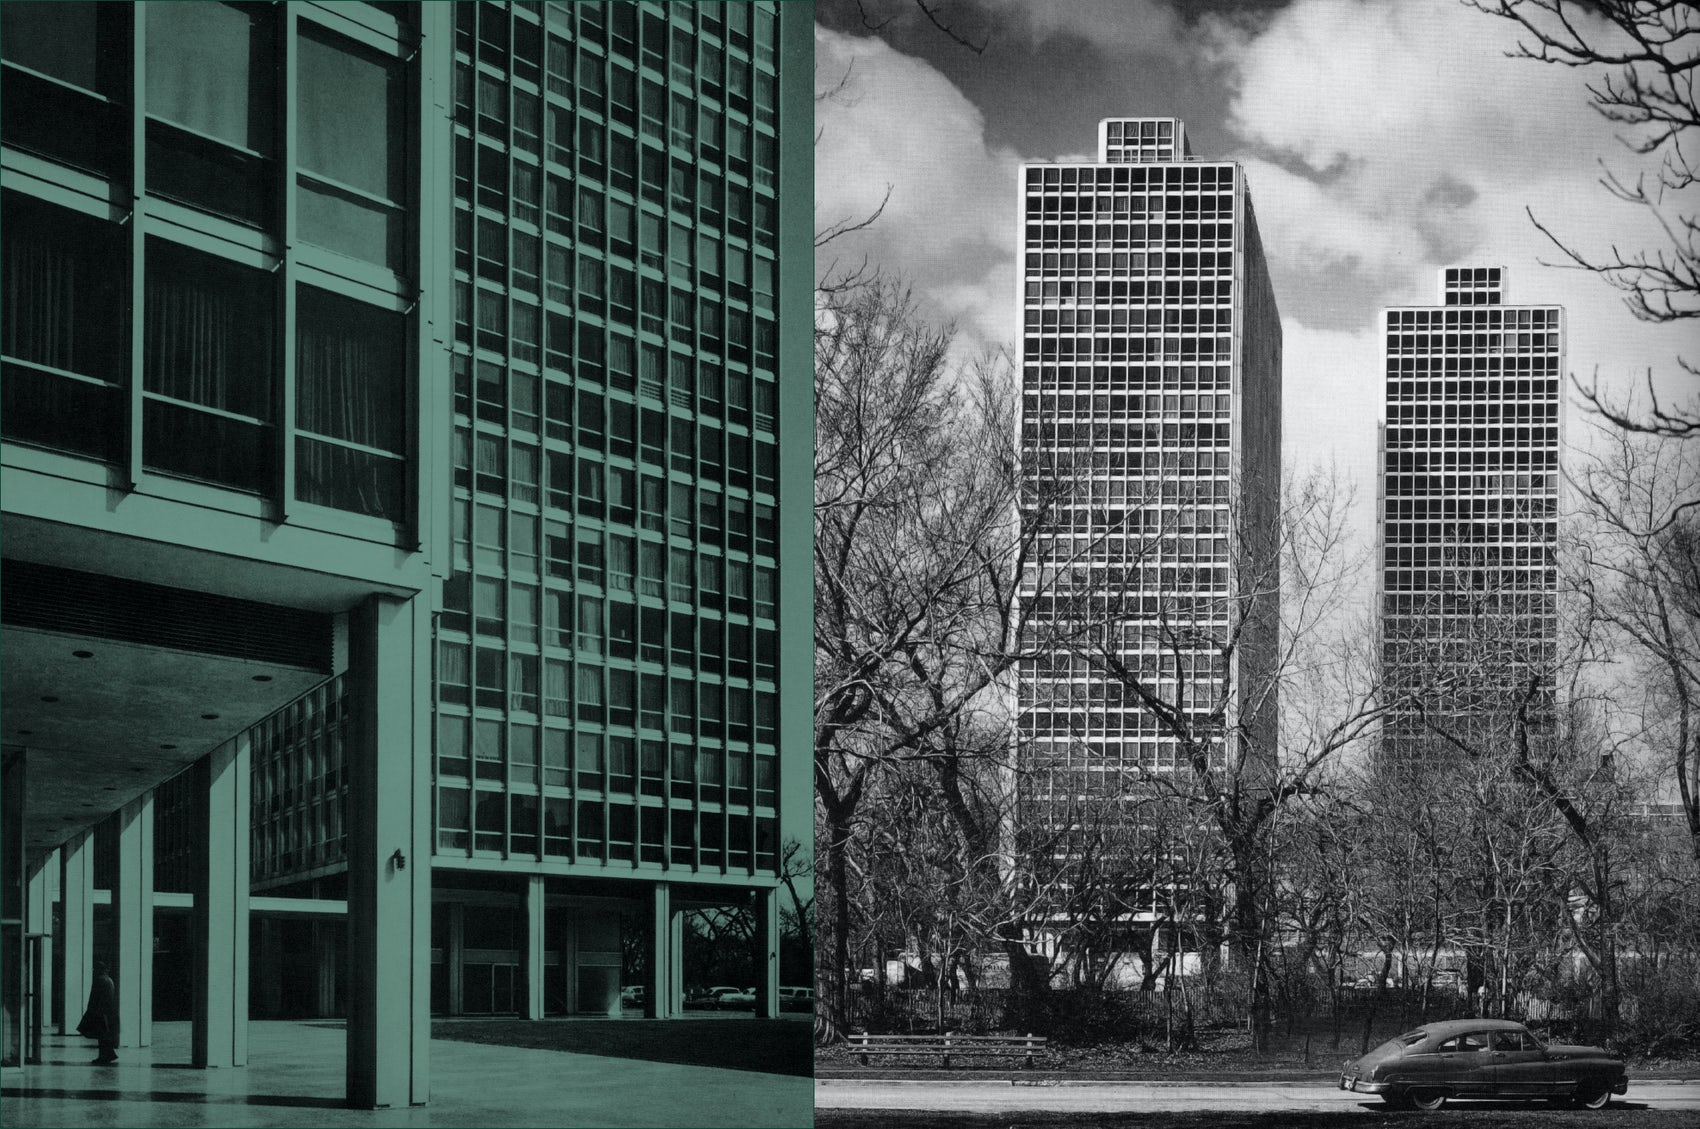 Commonwealth Plaza Historical Images